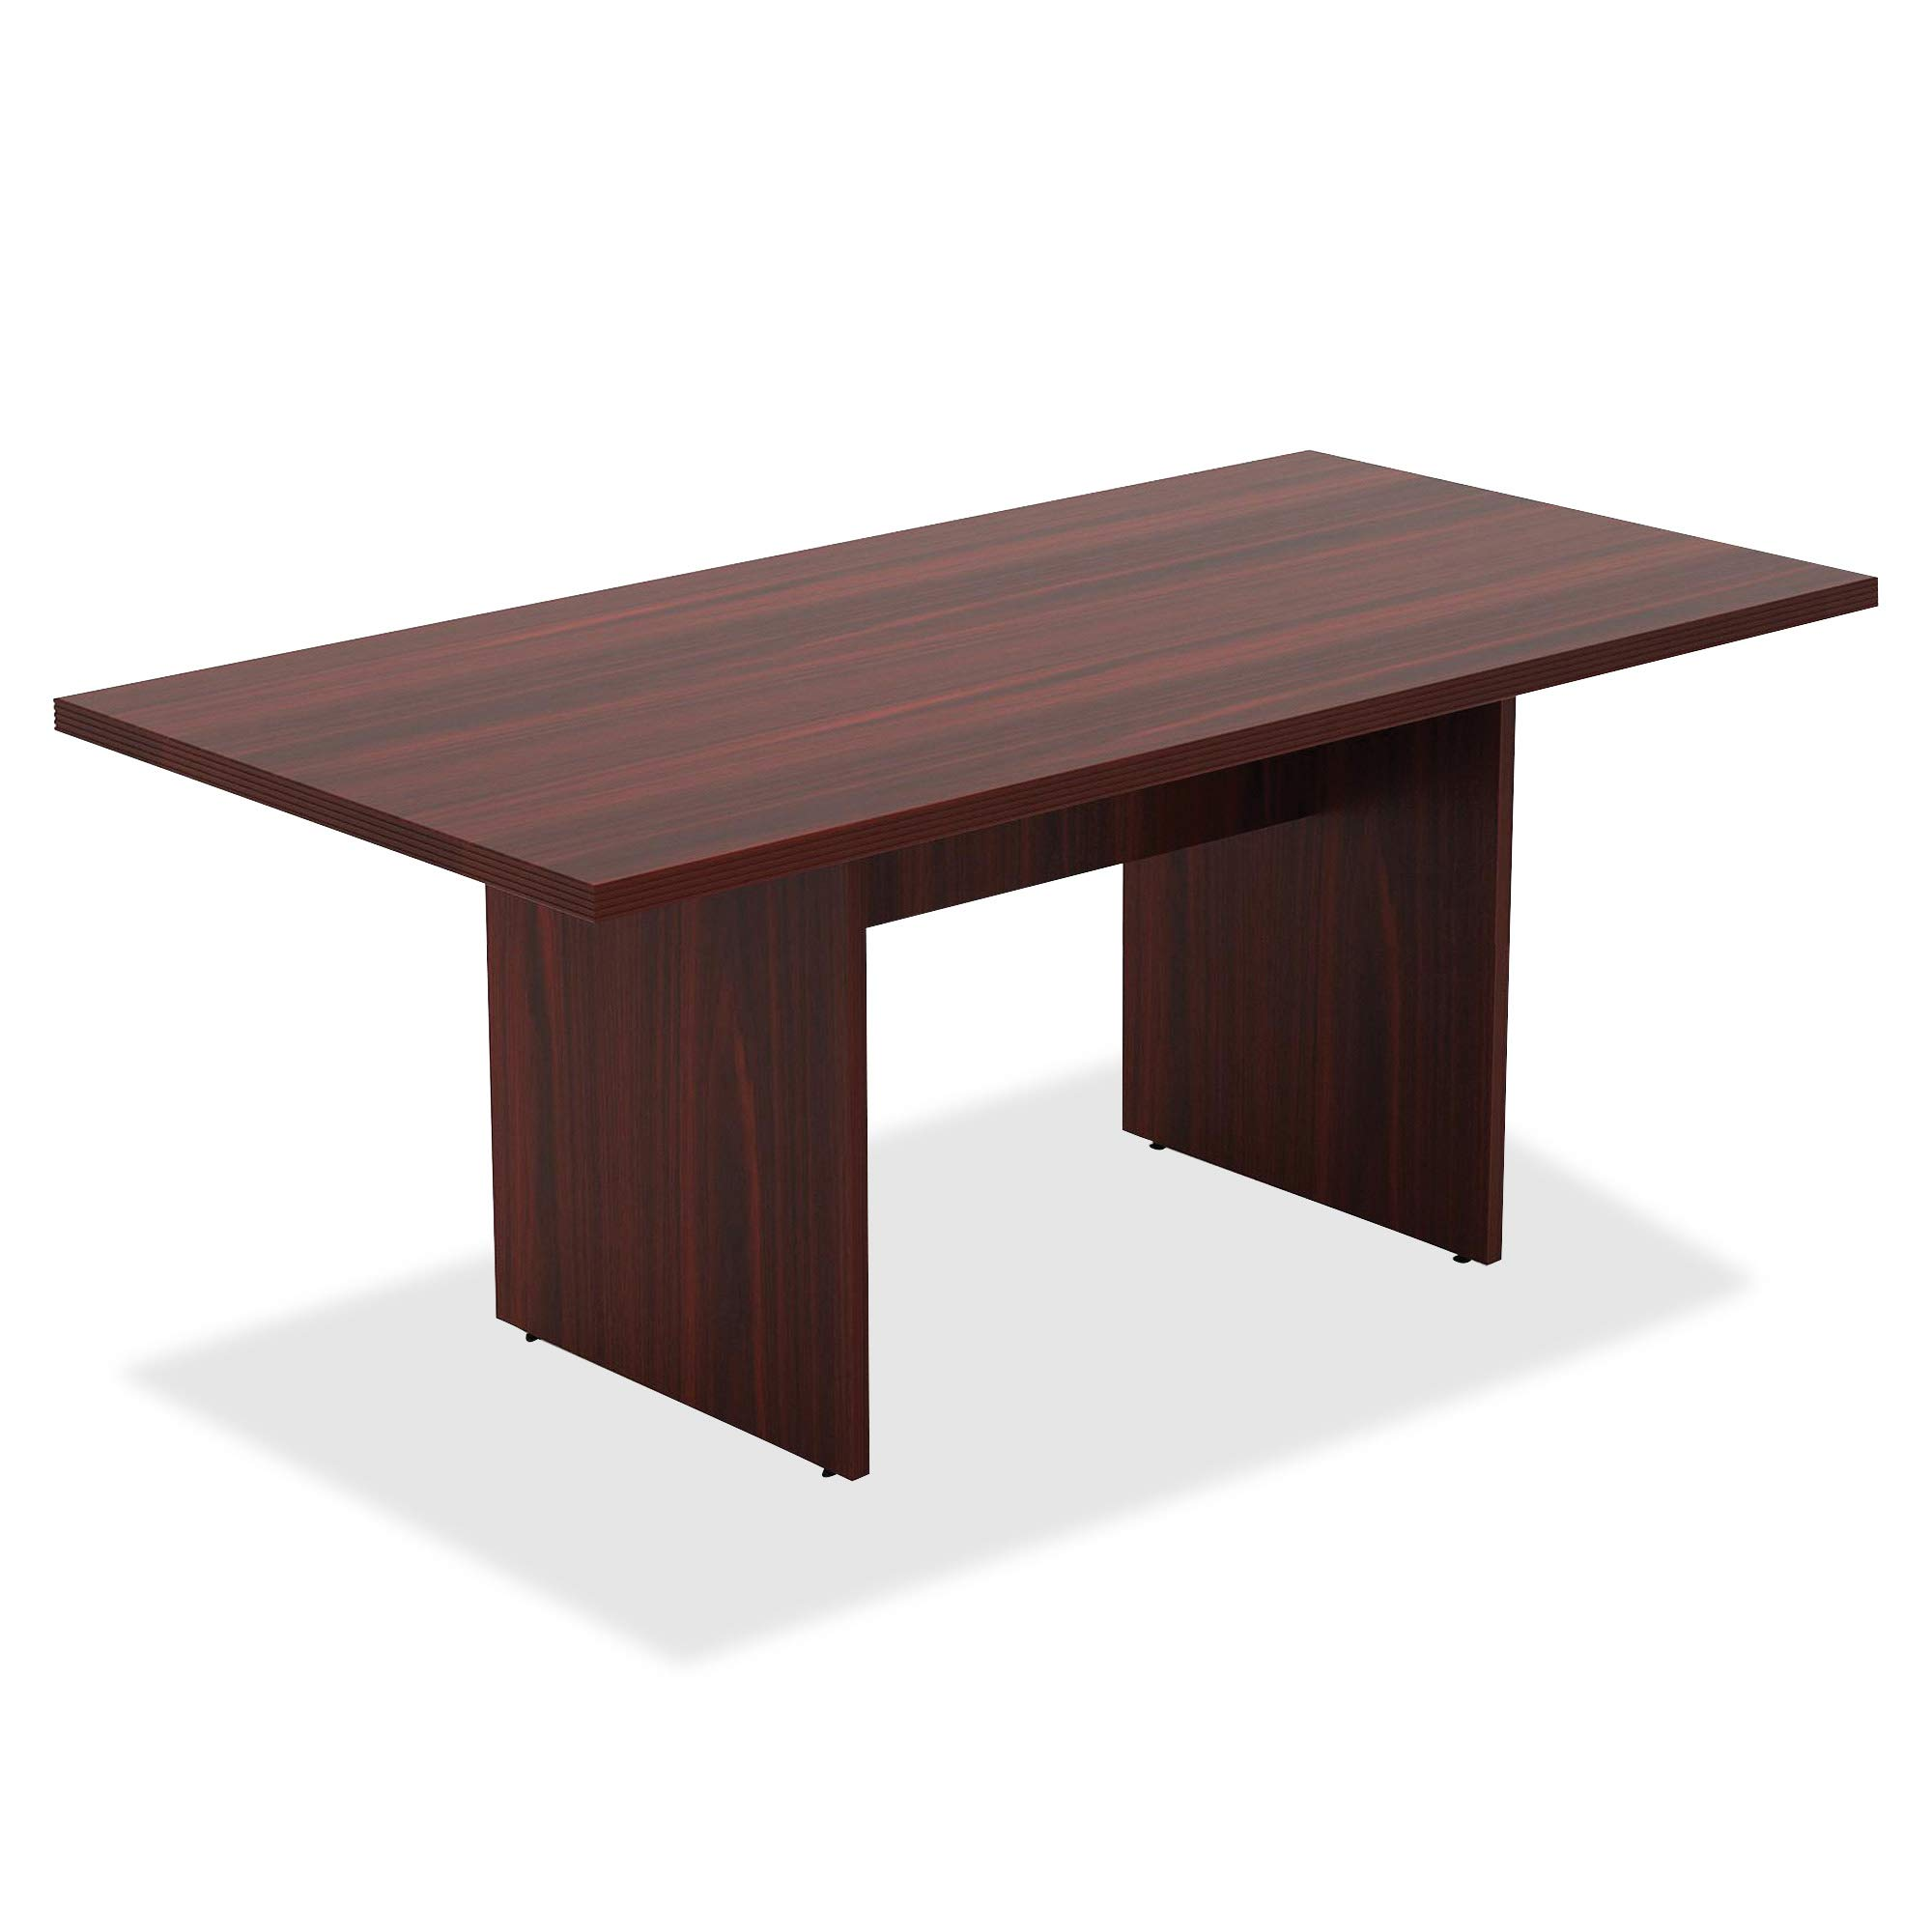 Lorell 34340 Chateau Conference Table, Mahogany Laminate by Lorell